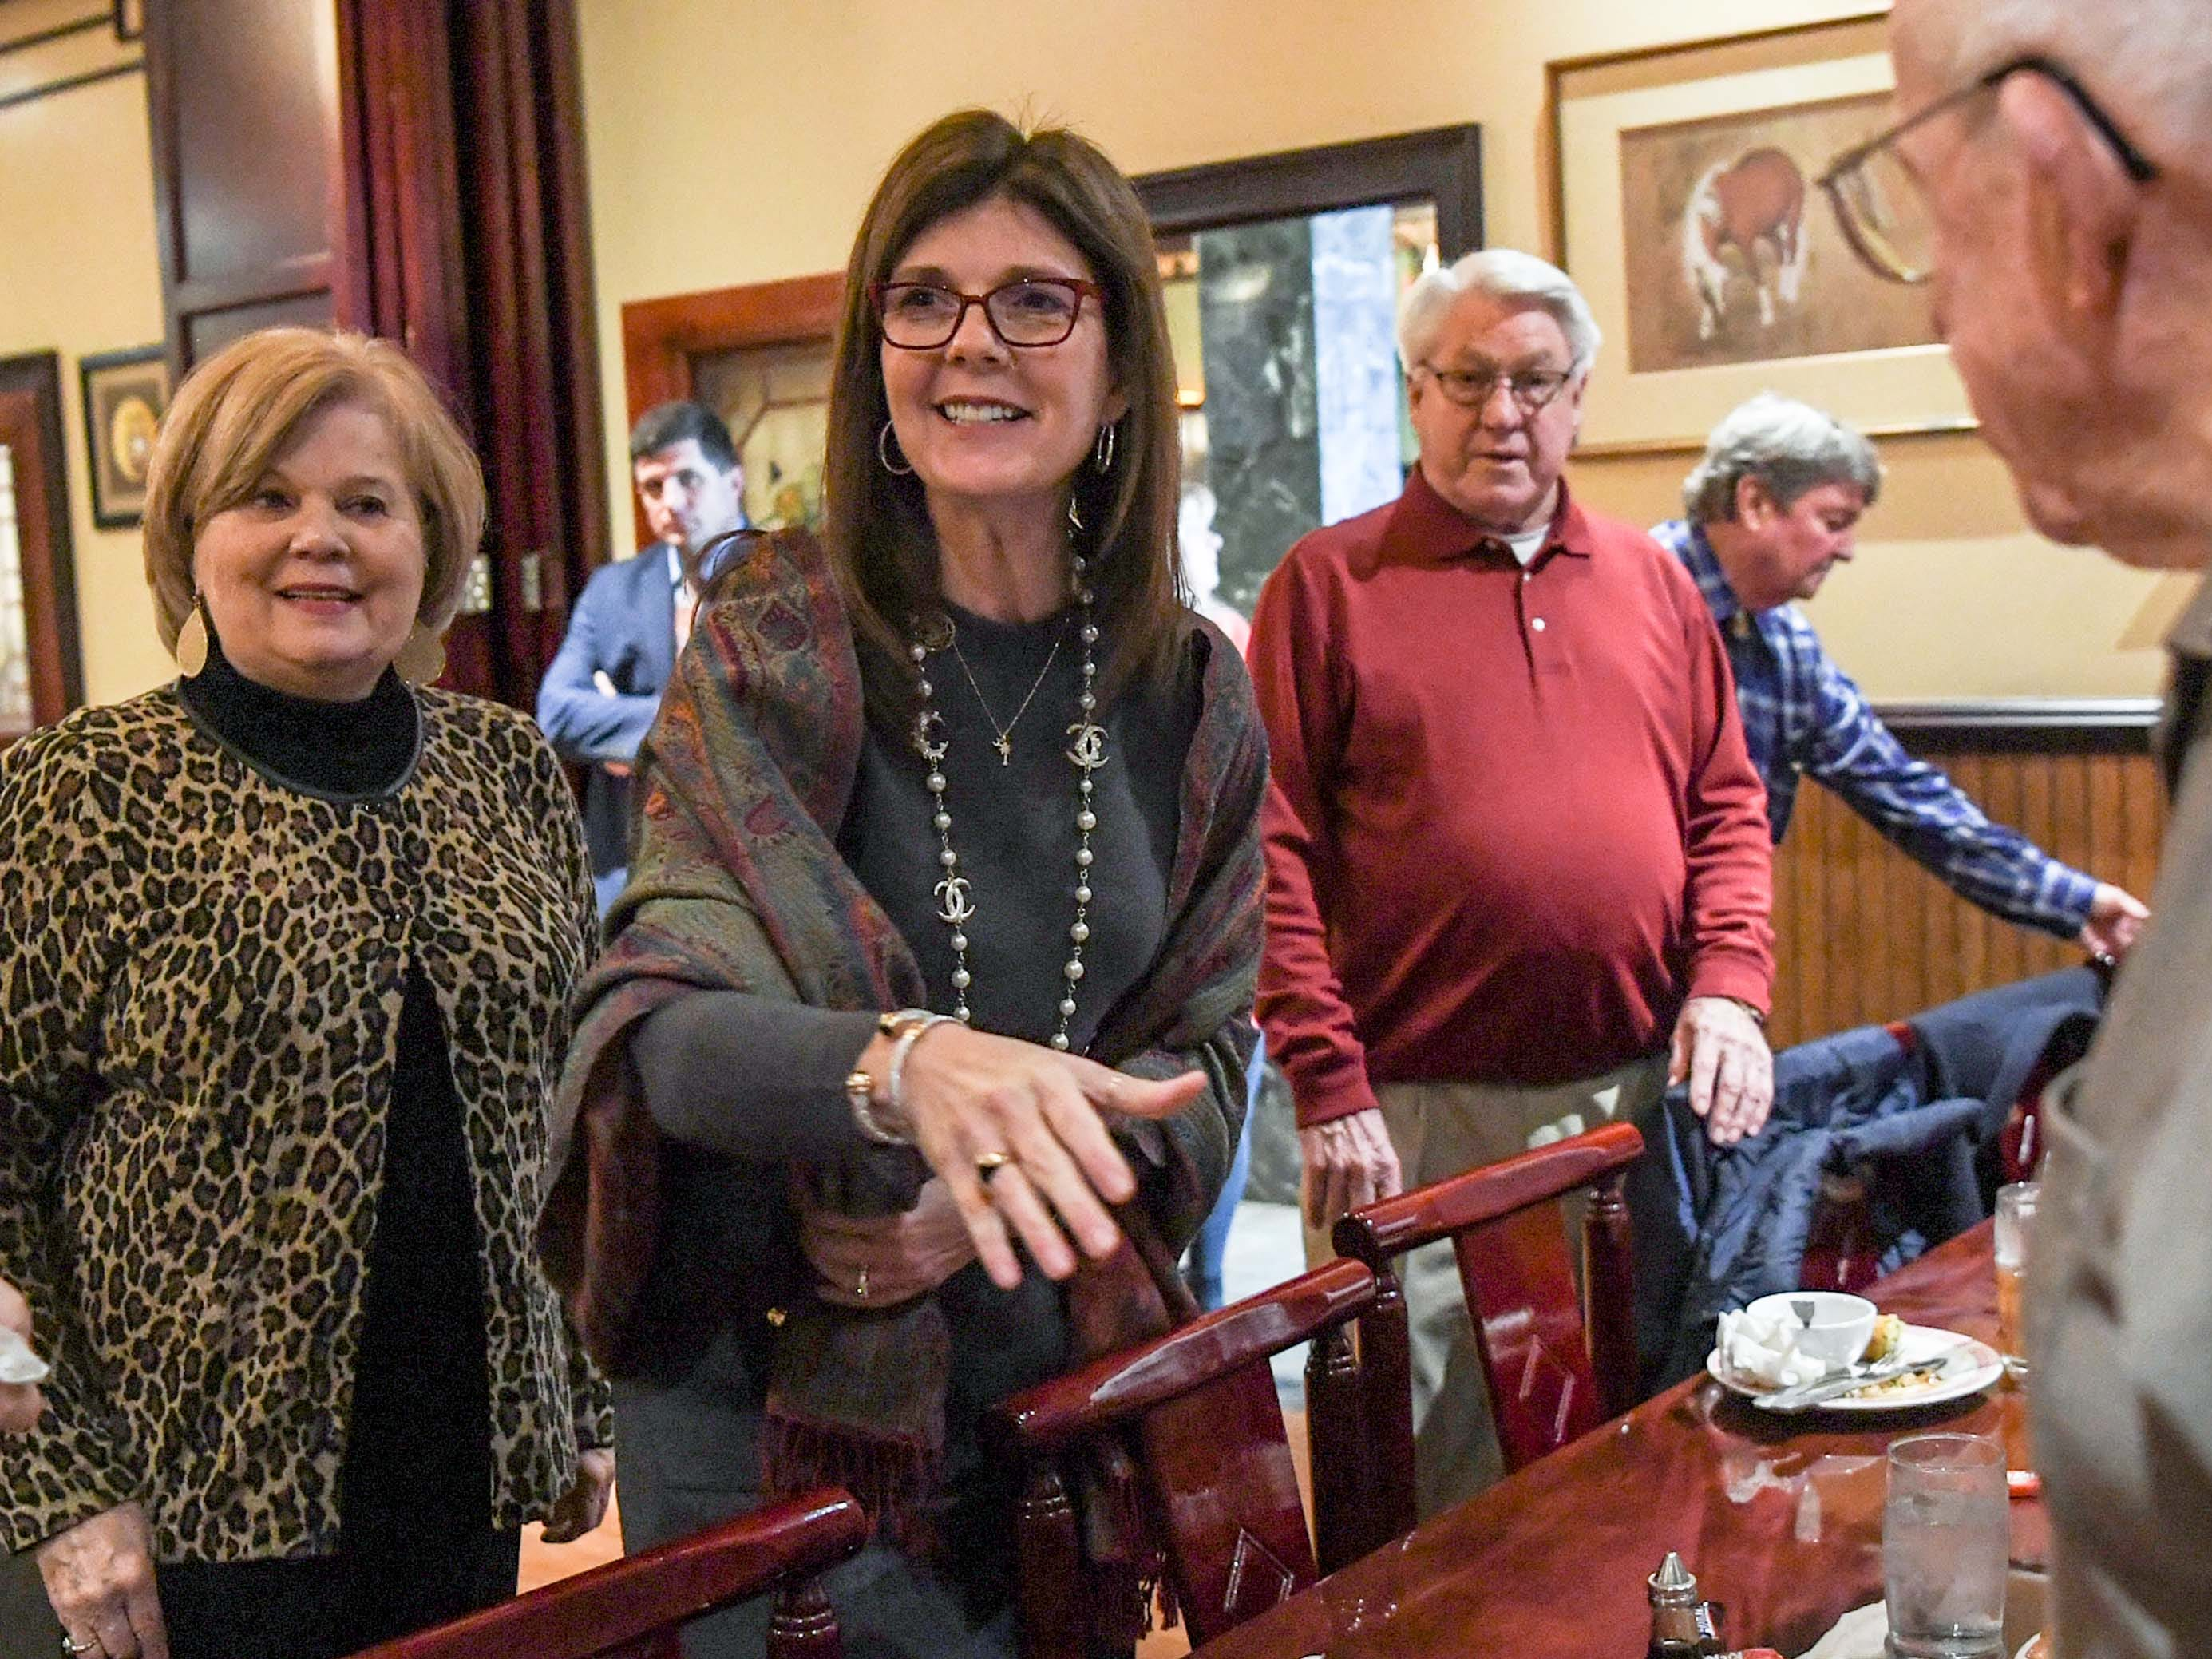 State Lt. Gov. Pamela Evette, middle, shakes hands with visitors at the 1st Monday Club at Master's Wok in Anderson Monday.